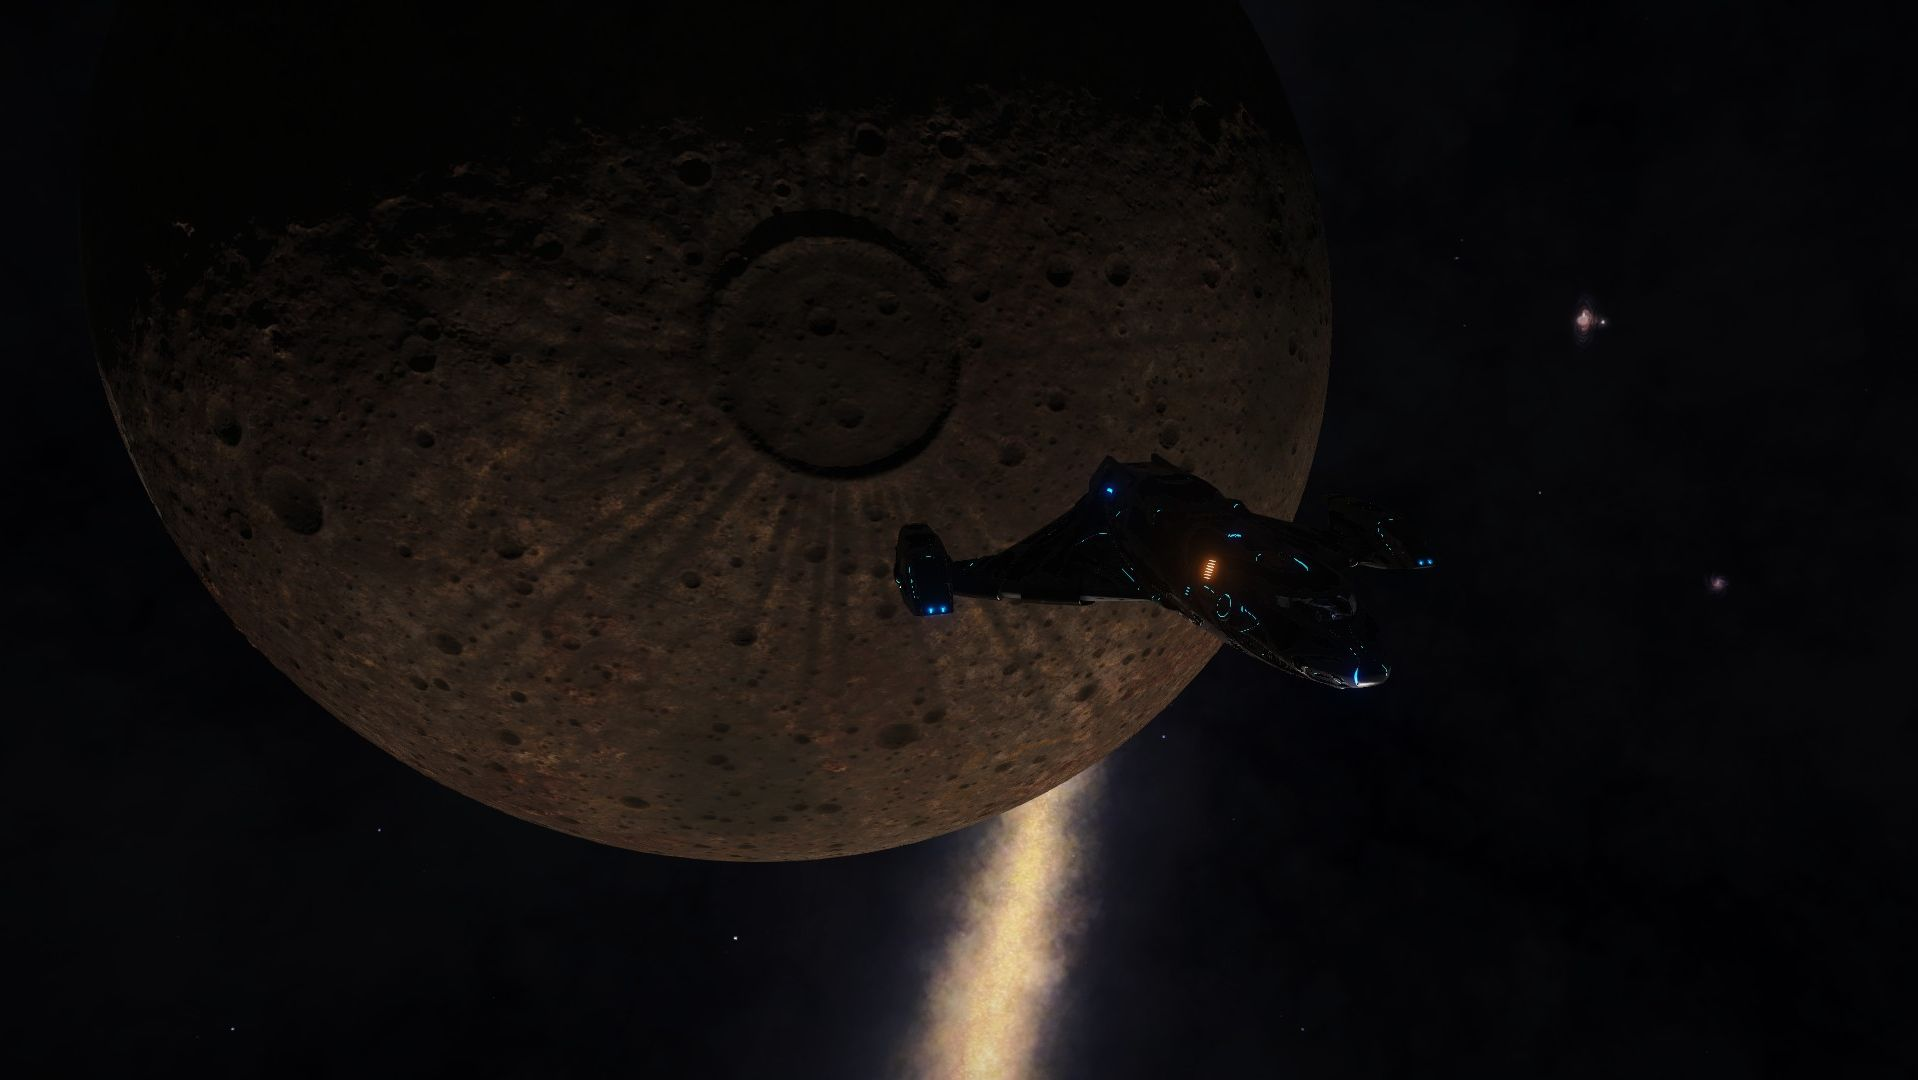 At the end of a five-month Elite Dangerous expedition, I